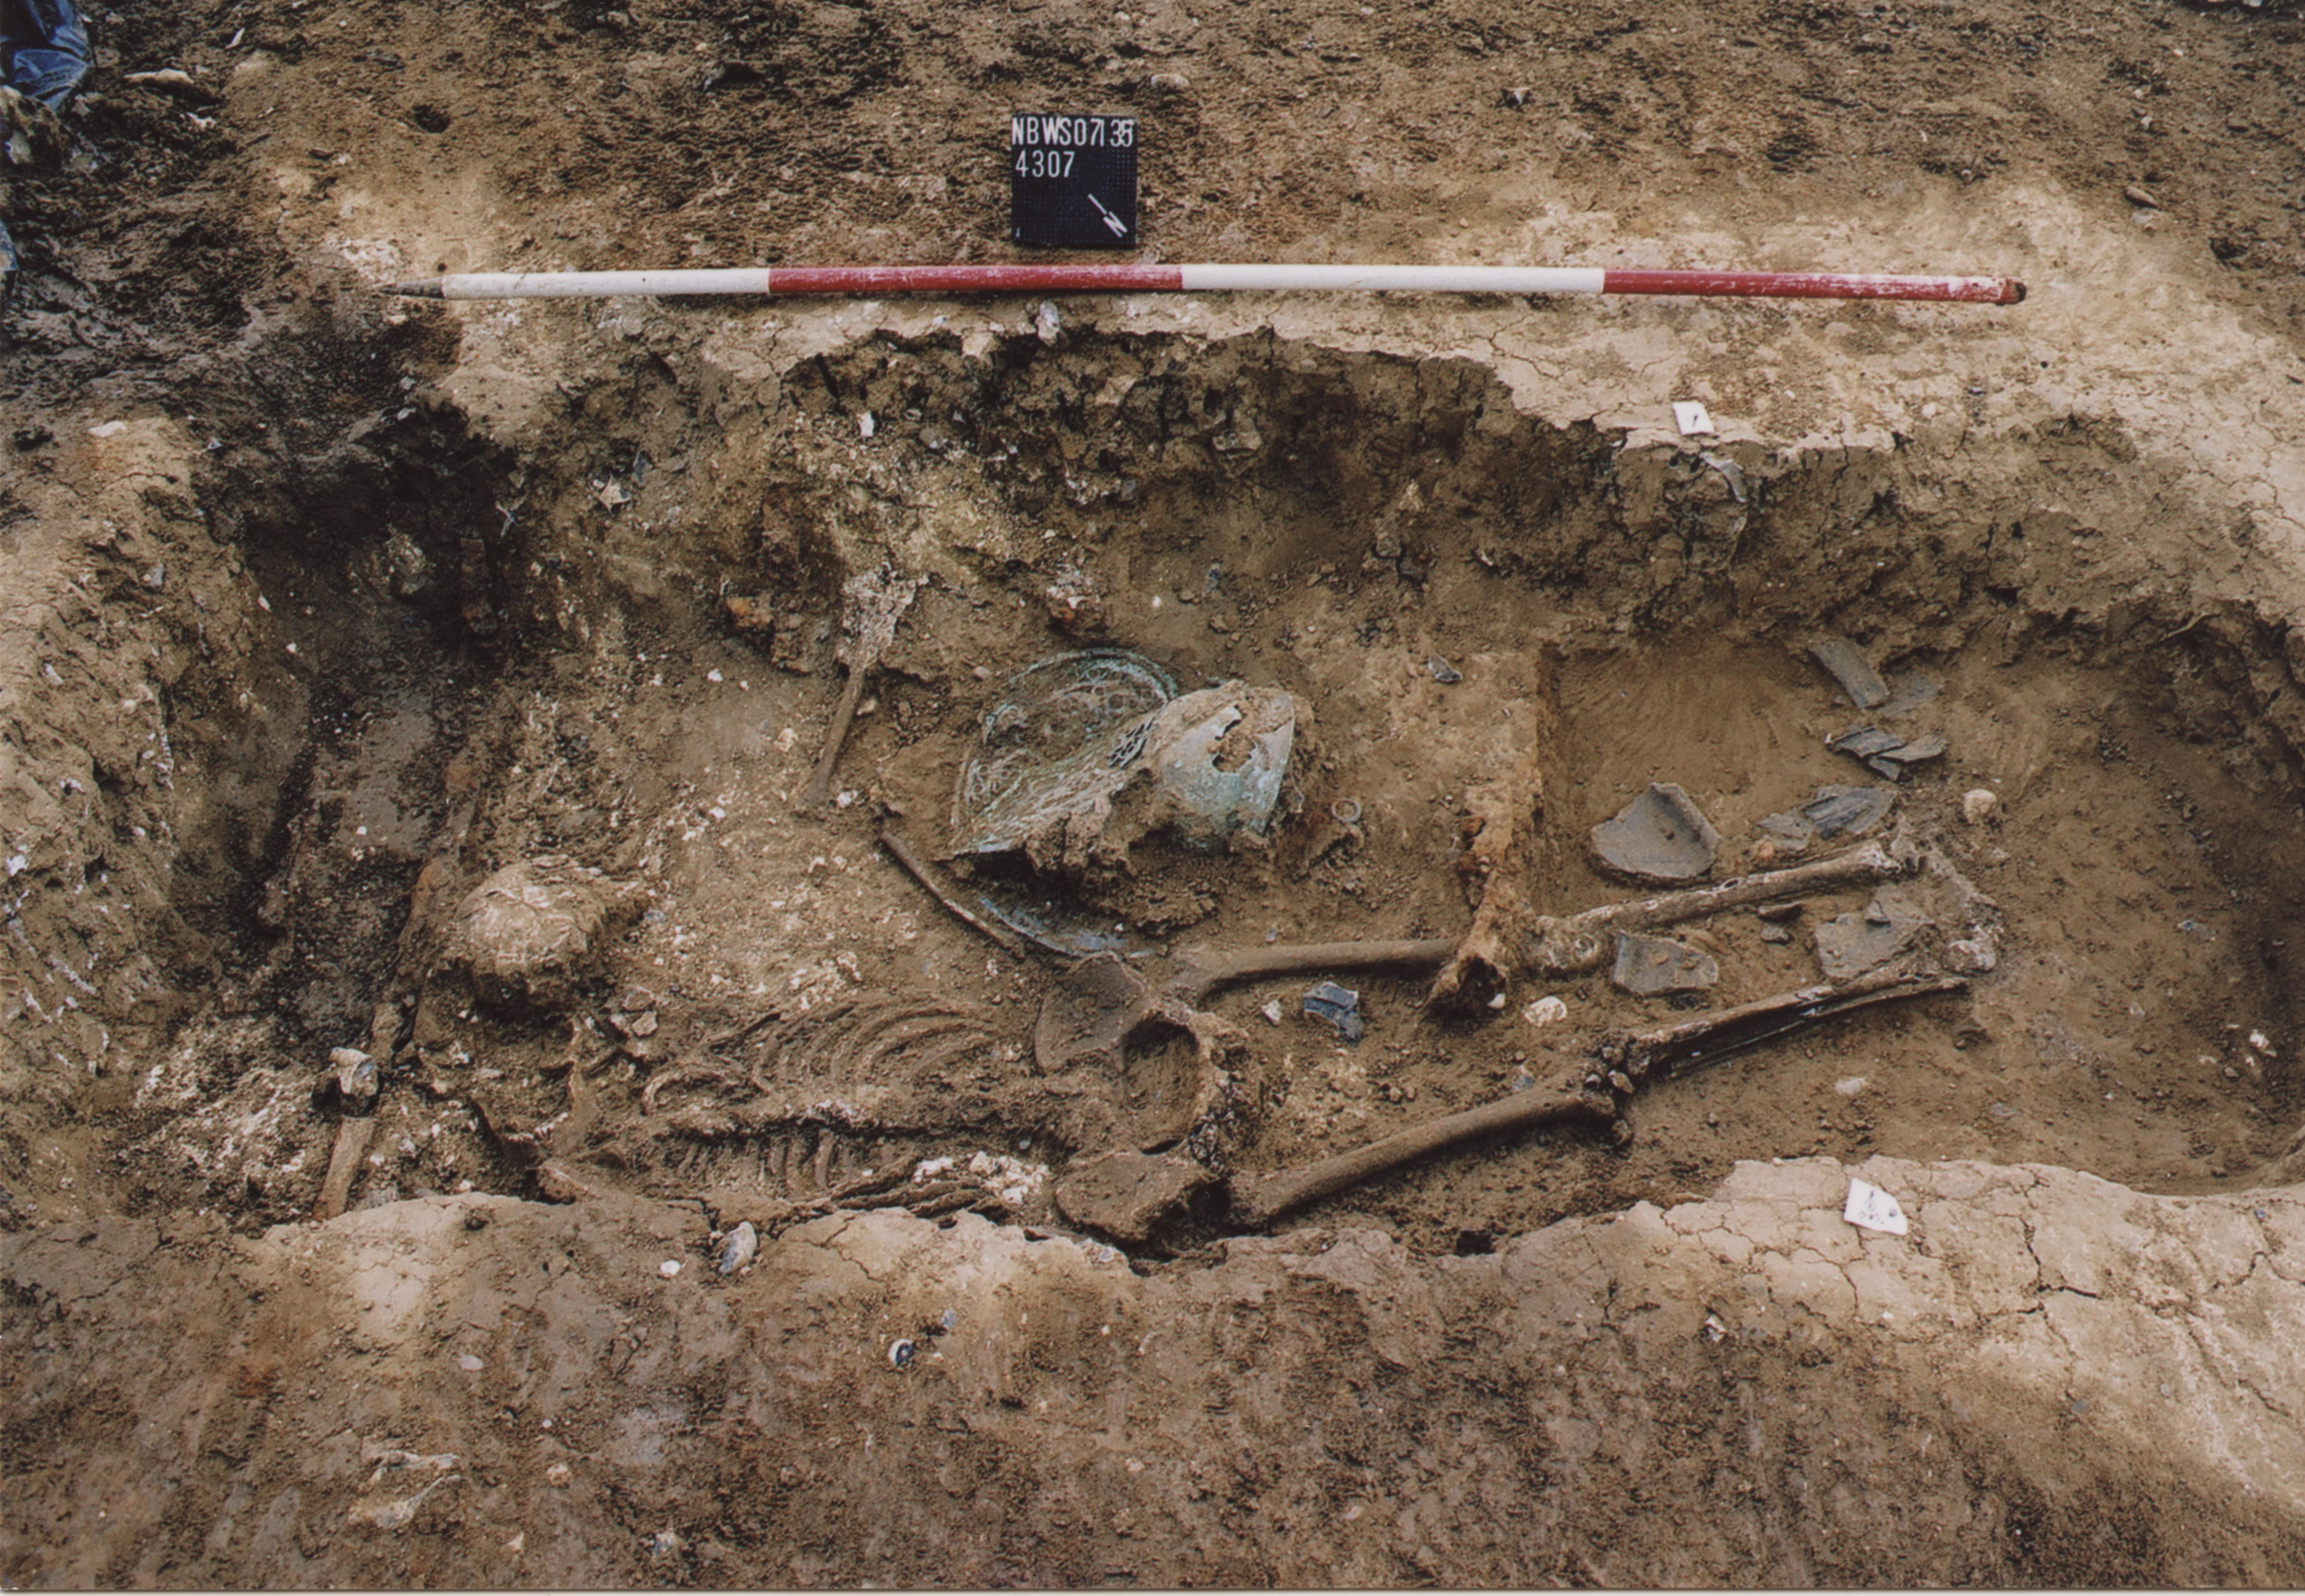 Further into the excavation of the grave the human remains are now visible, as is the incredible openwork crests adorning the helmet. Image courtesy of Thames Valley Archaeological Services Ltd